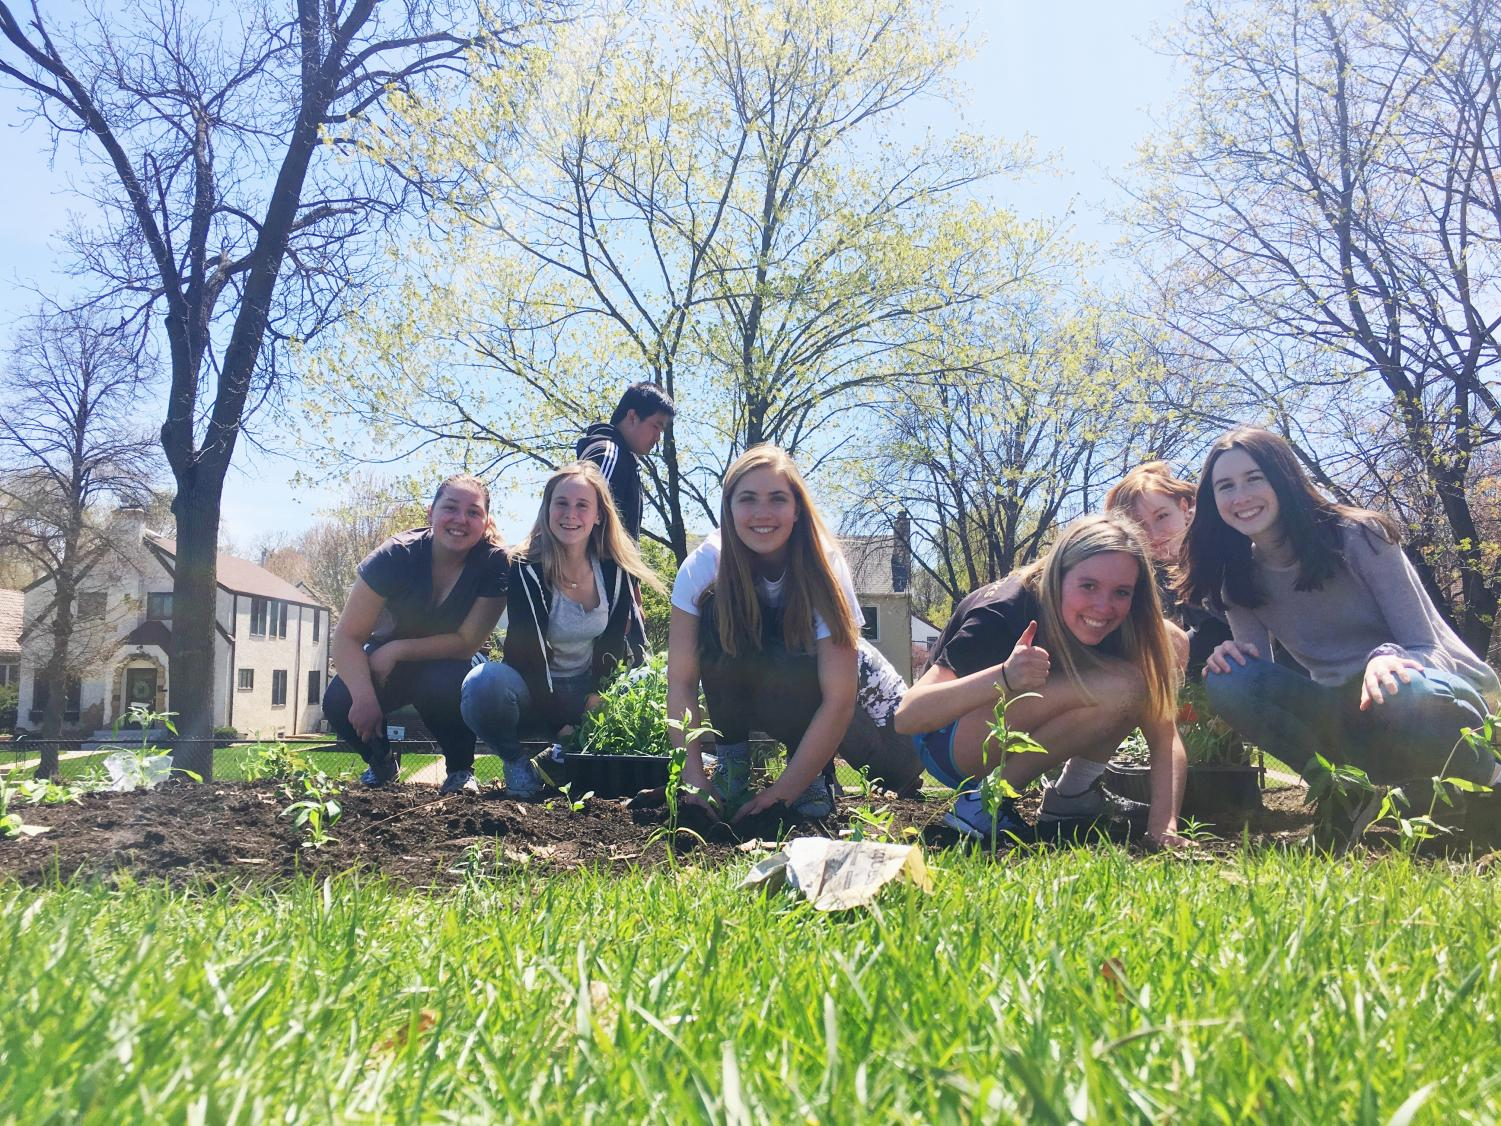 Juniors+Celeste+Parke-Reimer%2C+Sonja+Henze%2C+Sydney+Therien%2C+Abby+Hedberg%2C+and+Amelia+Batson+have+worked+for+the+last+year+in+PEP+to+plan+for+the+pollinator+garden.